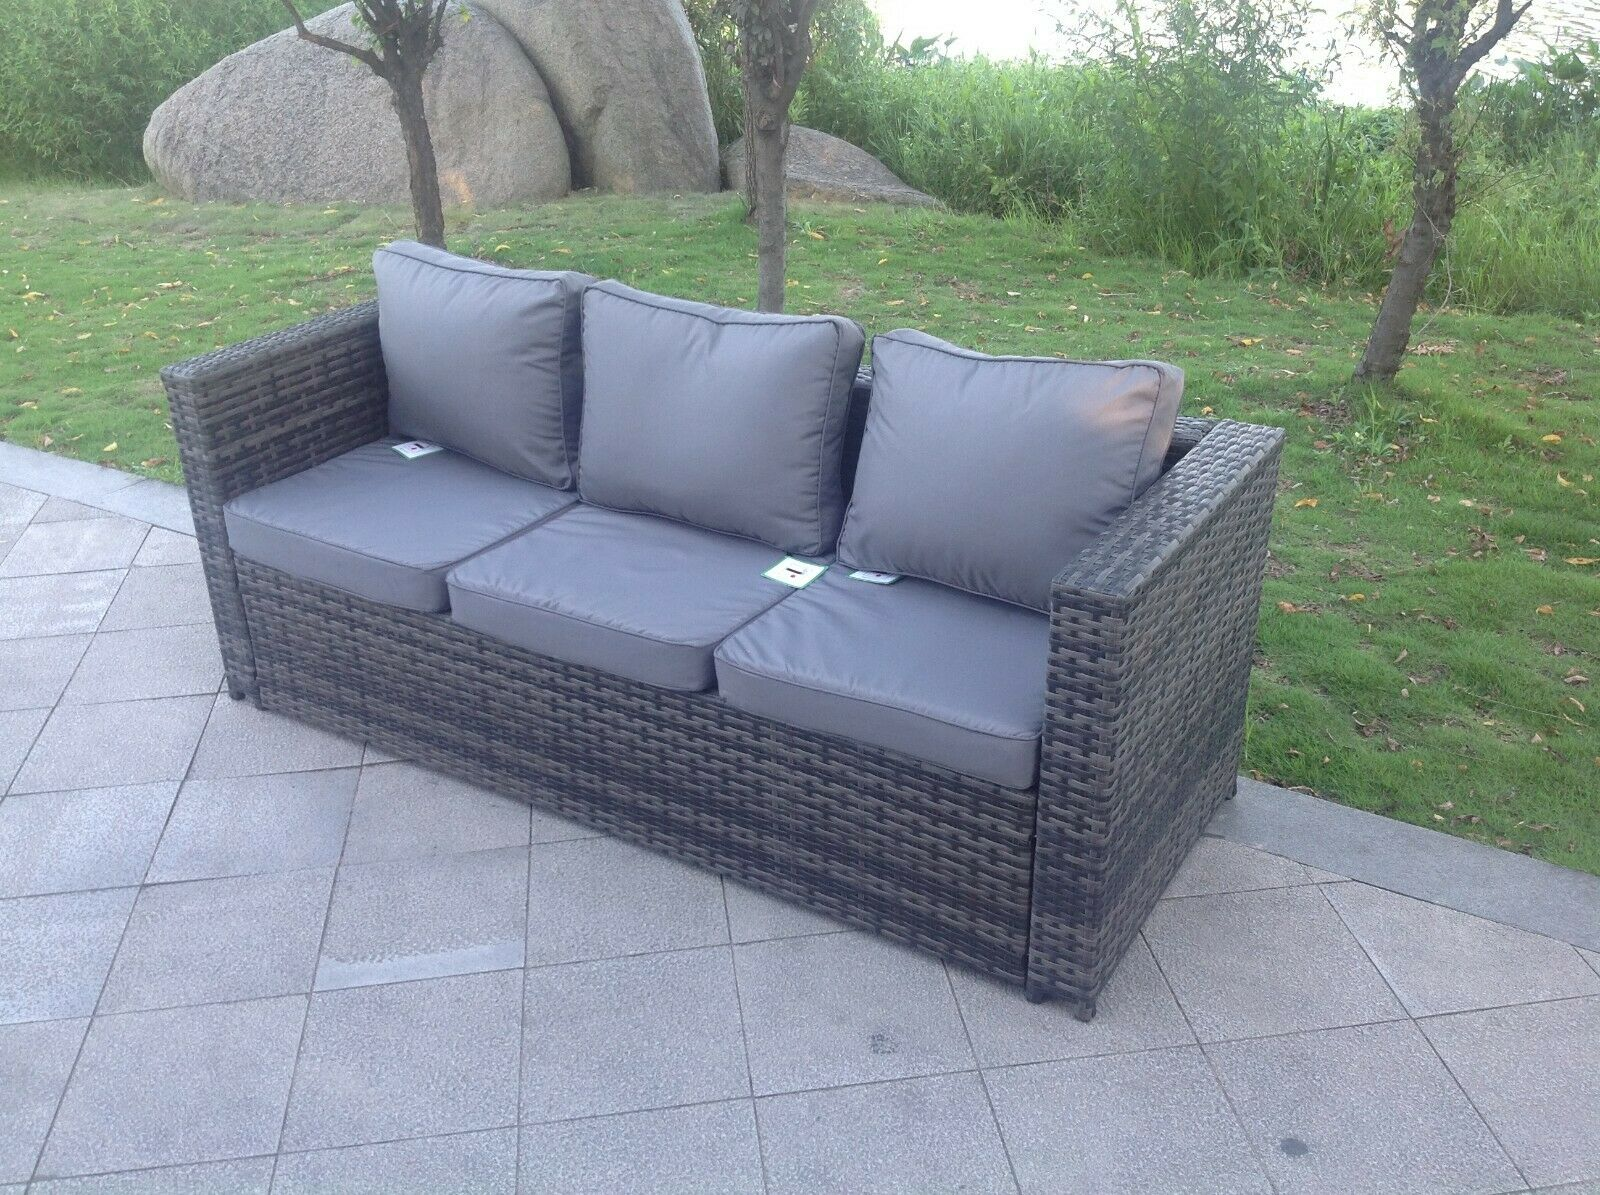 Garden Furniture - Grey mixed 3 seater rattan Sofa patio conservatory outdoor garden furniture